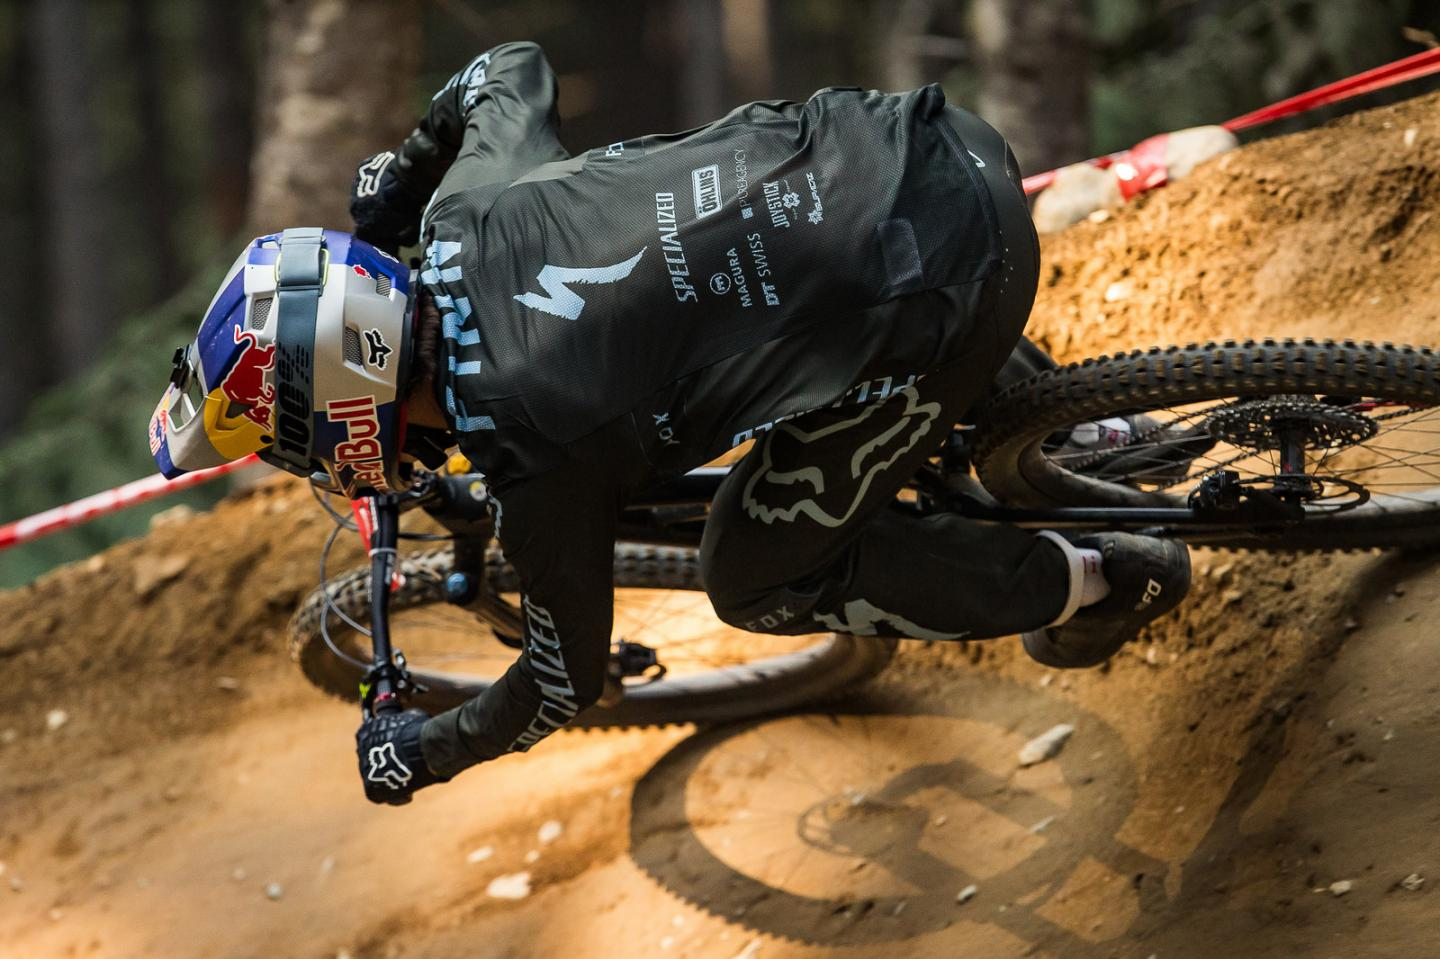 Crankworx Air DH has a new Champion